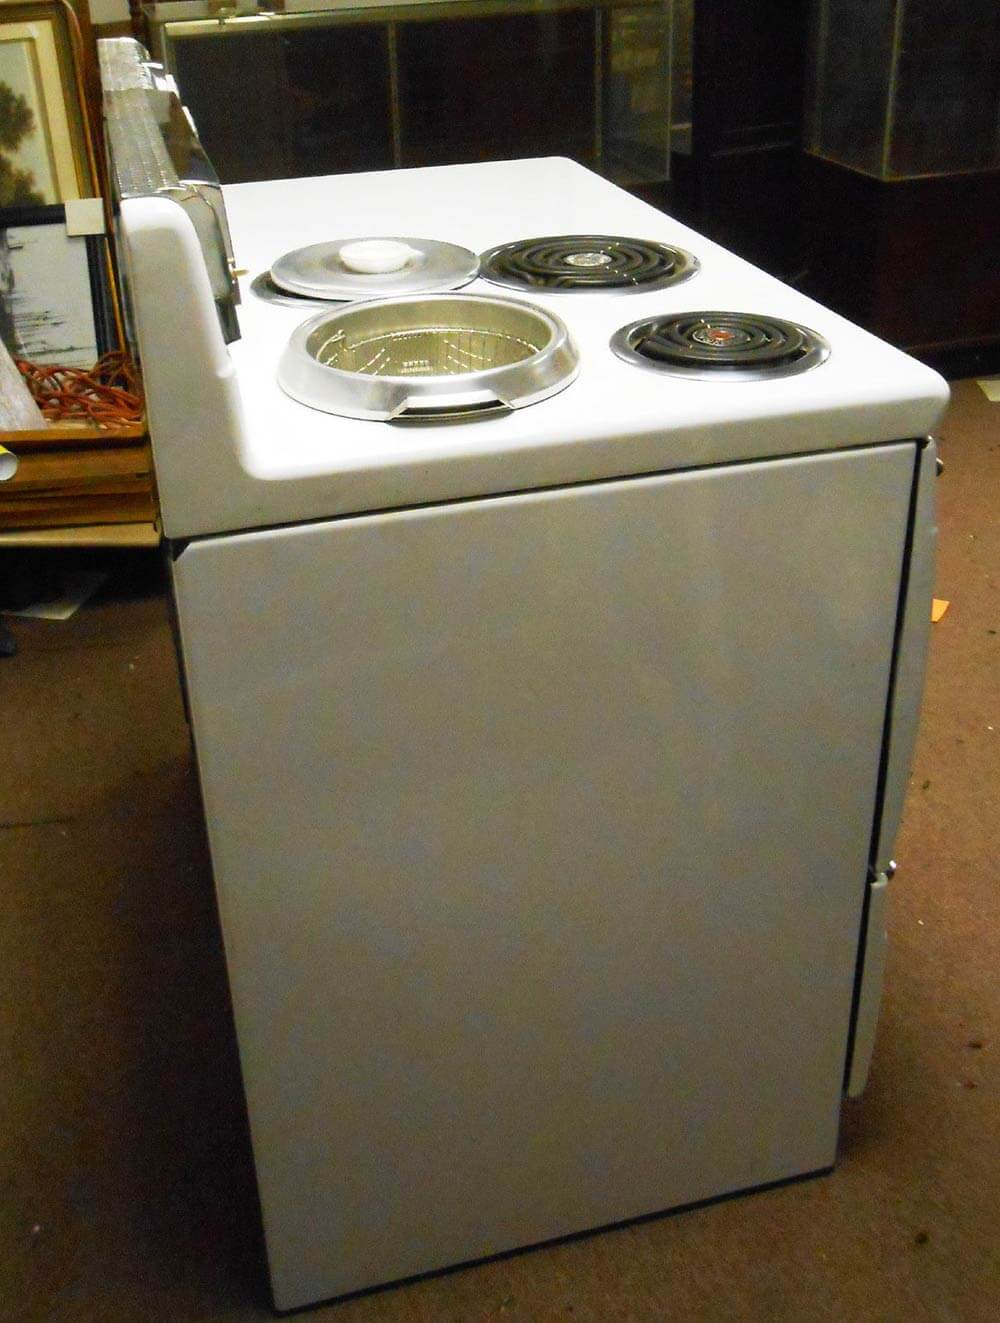 Westinghouse Kitchen Appliances New Old Stock Westinghouse Dd 74 Range Discovered After 60 Years